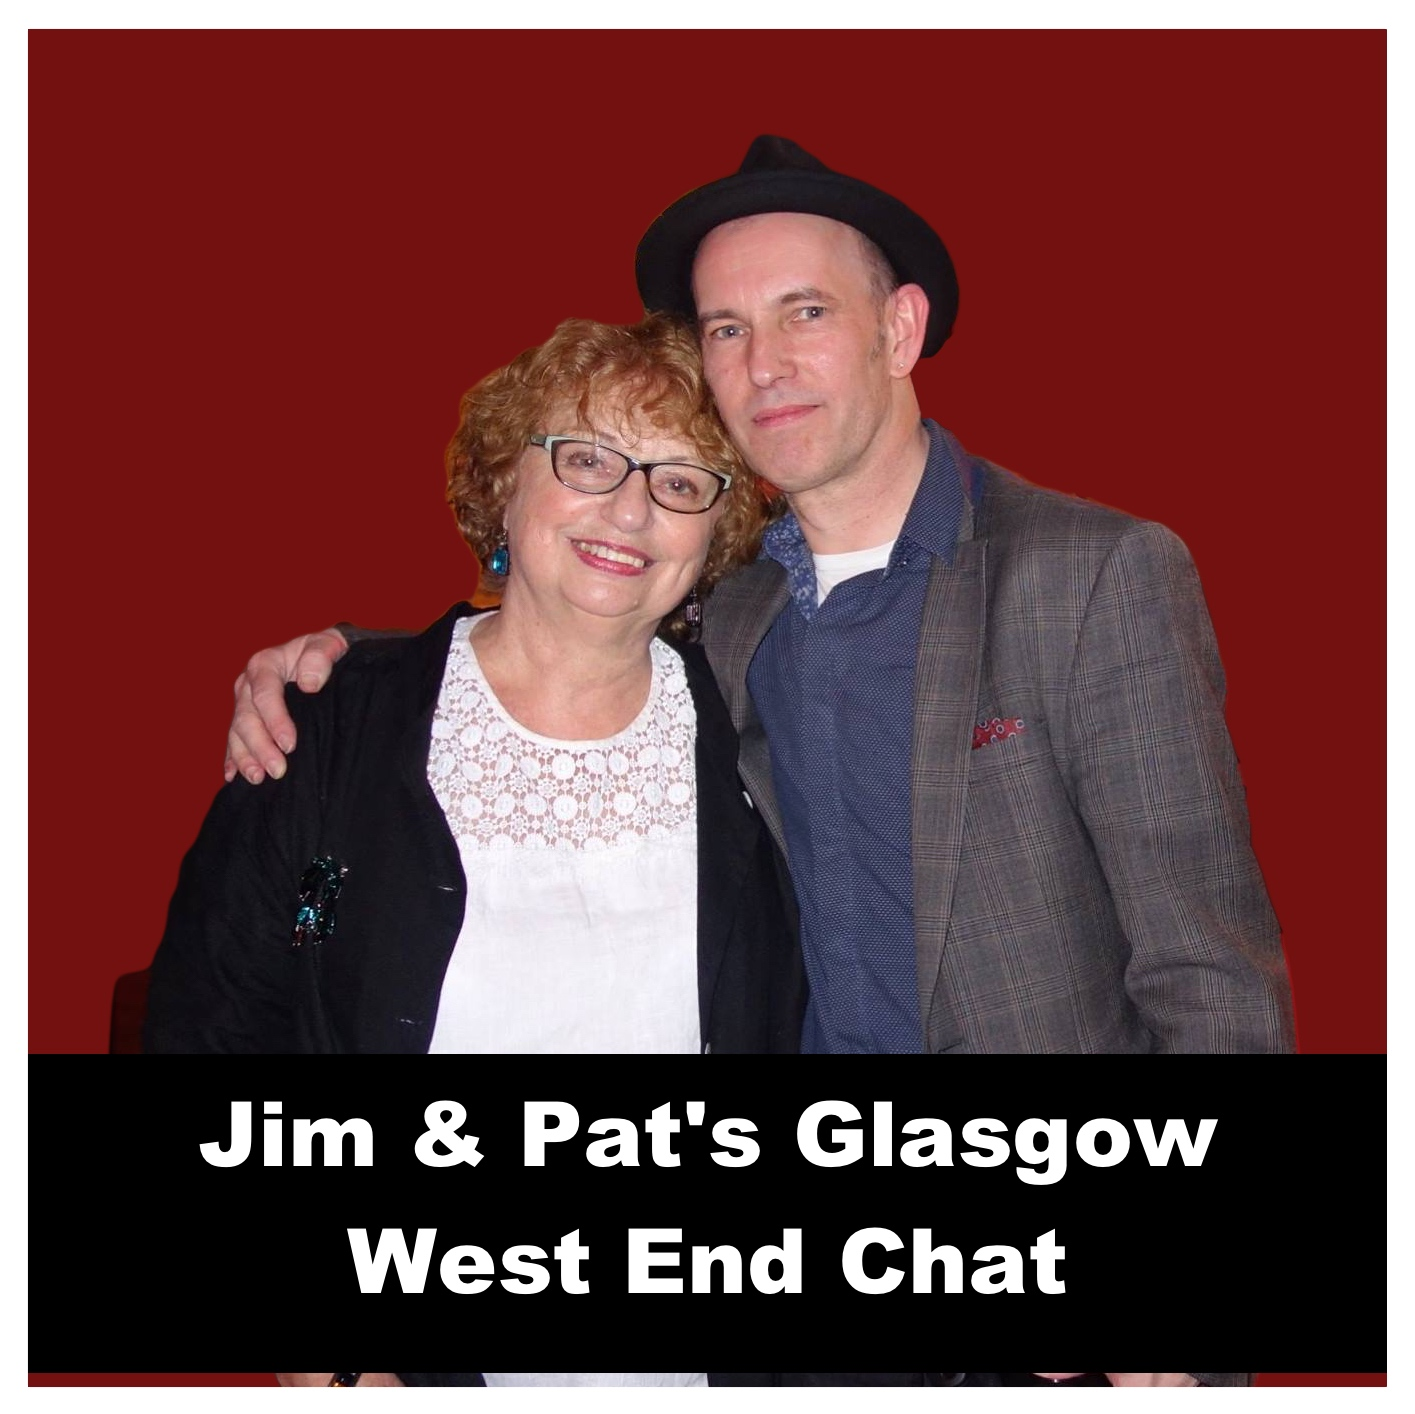 Jim & Pat's Glasgow West End Chat